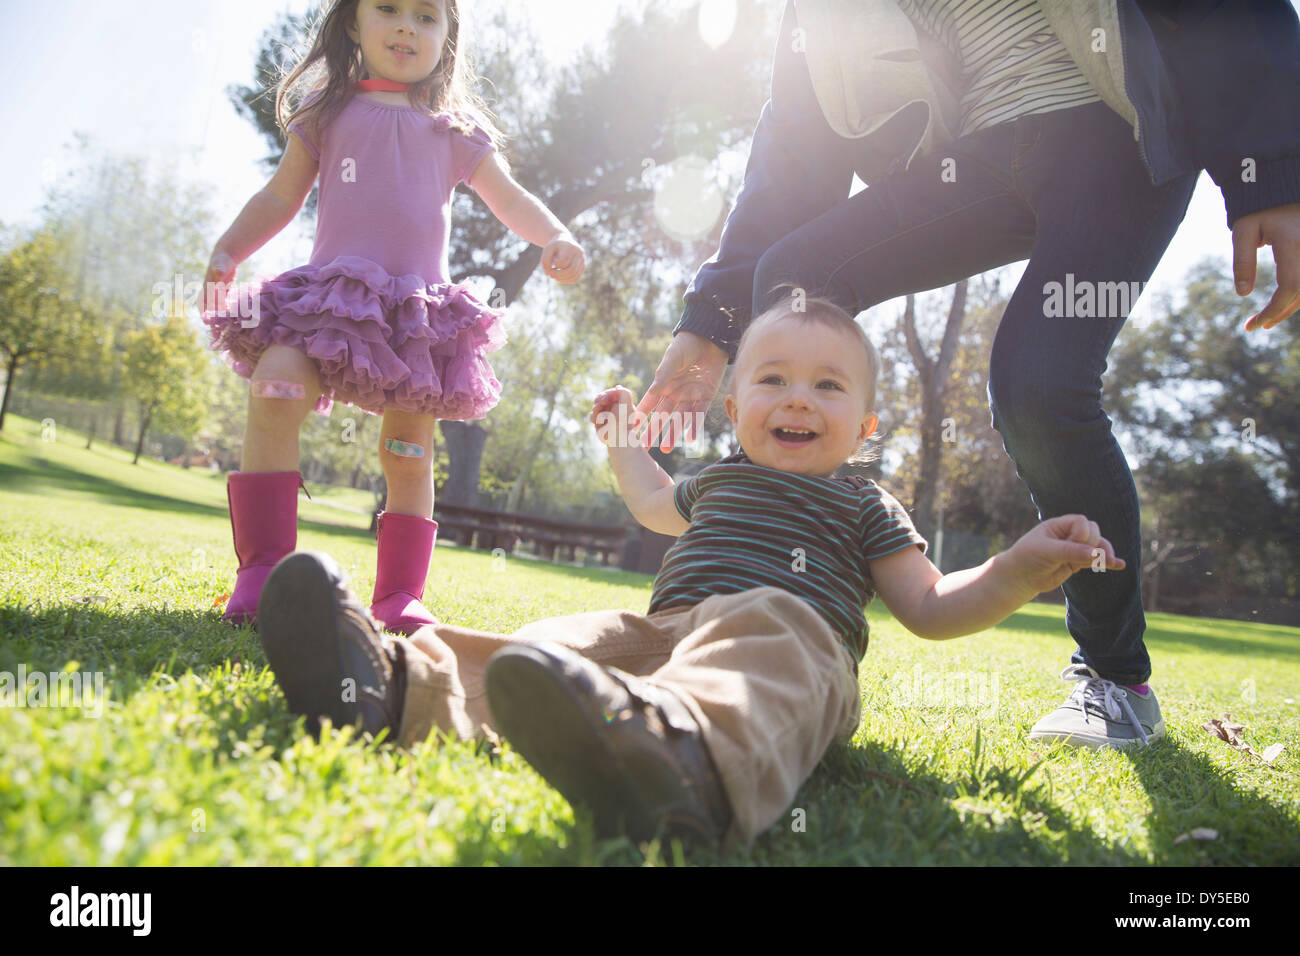 Siblings playing in park - Stock Image